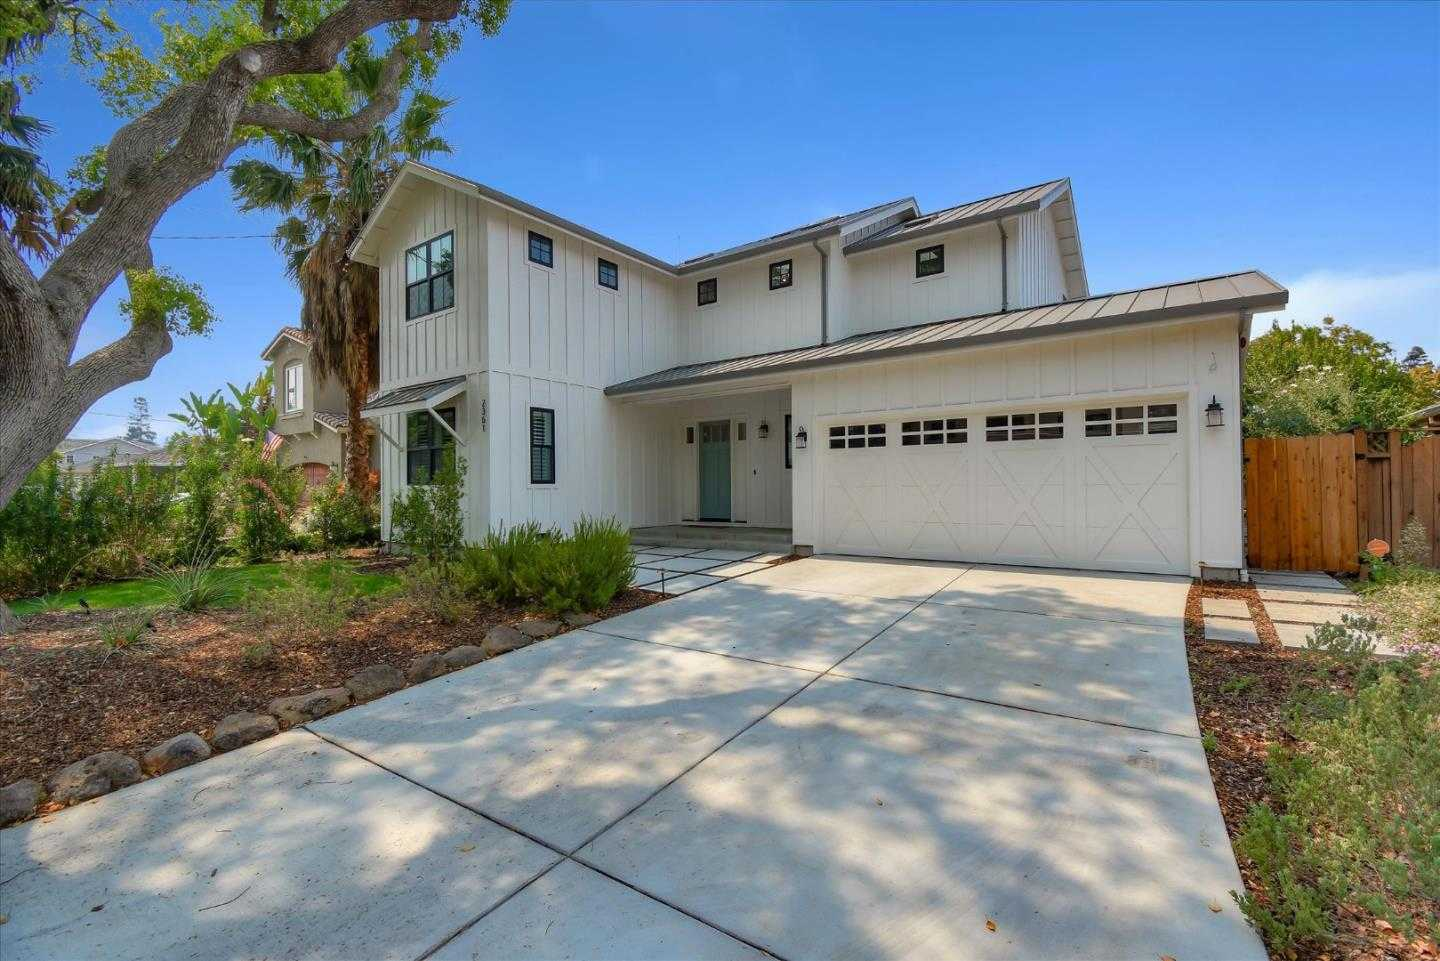 $2,799,000 - 5Br/5Ba -  for Sale in San Jose